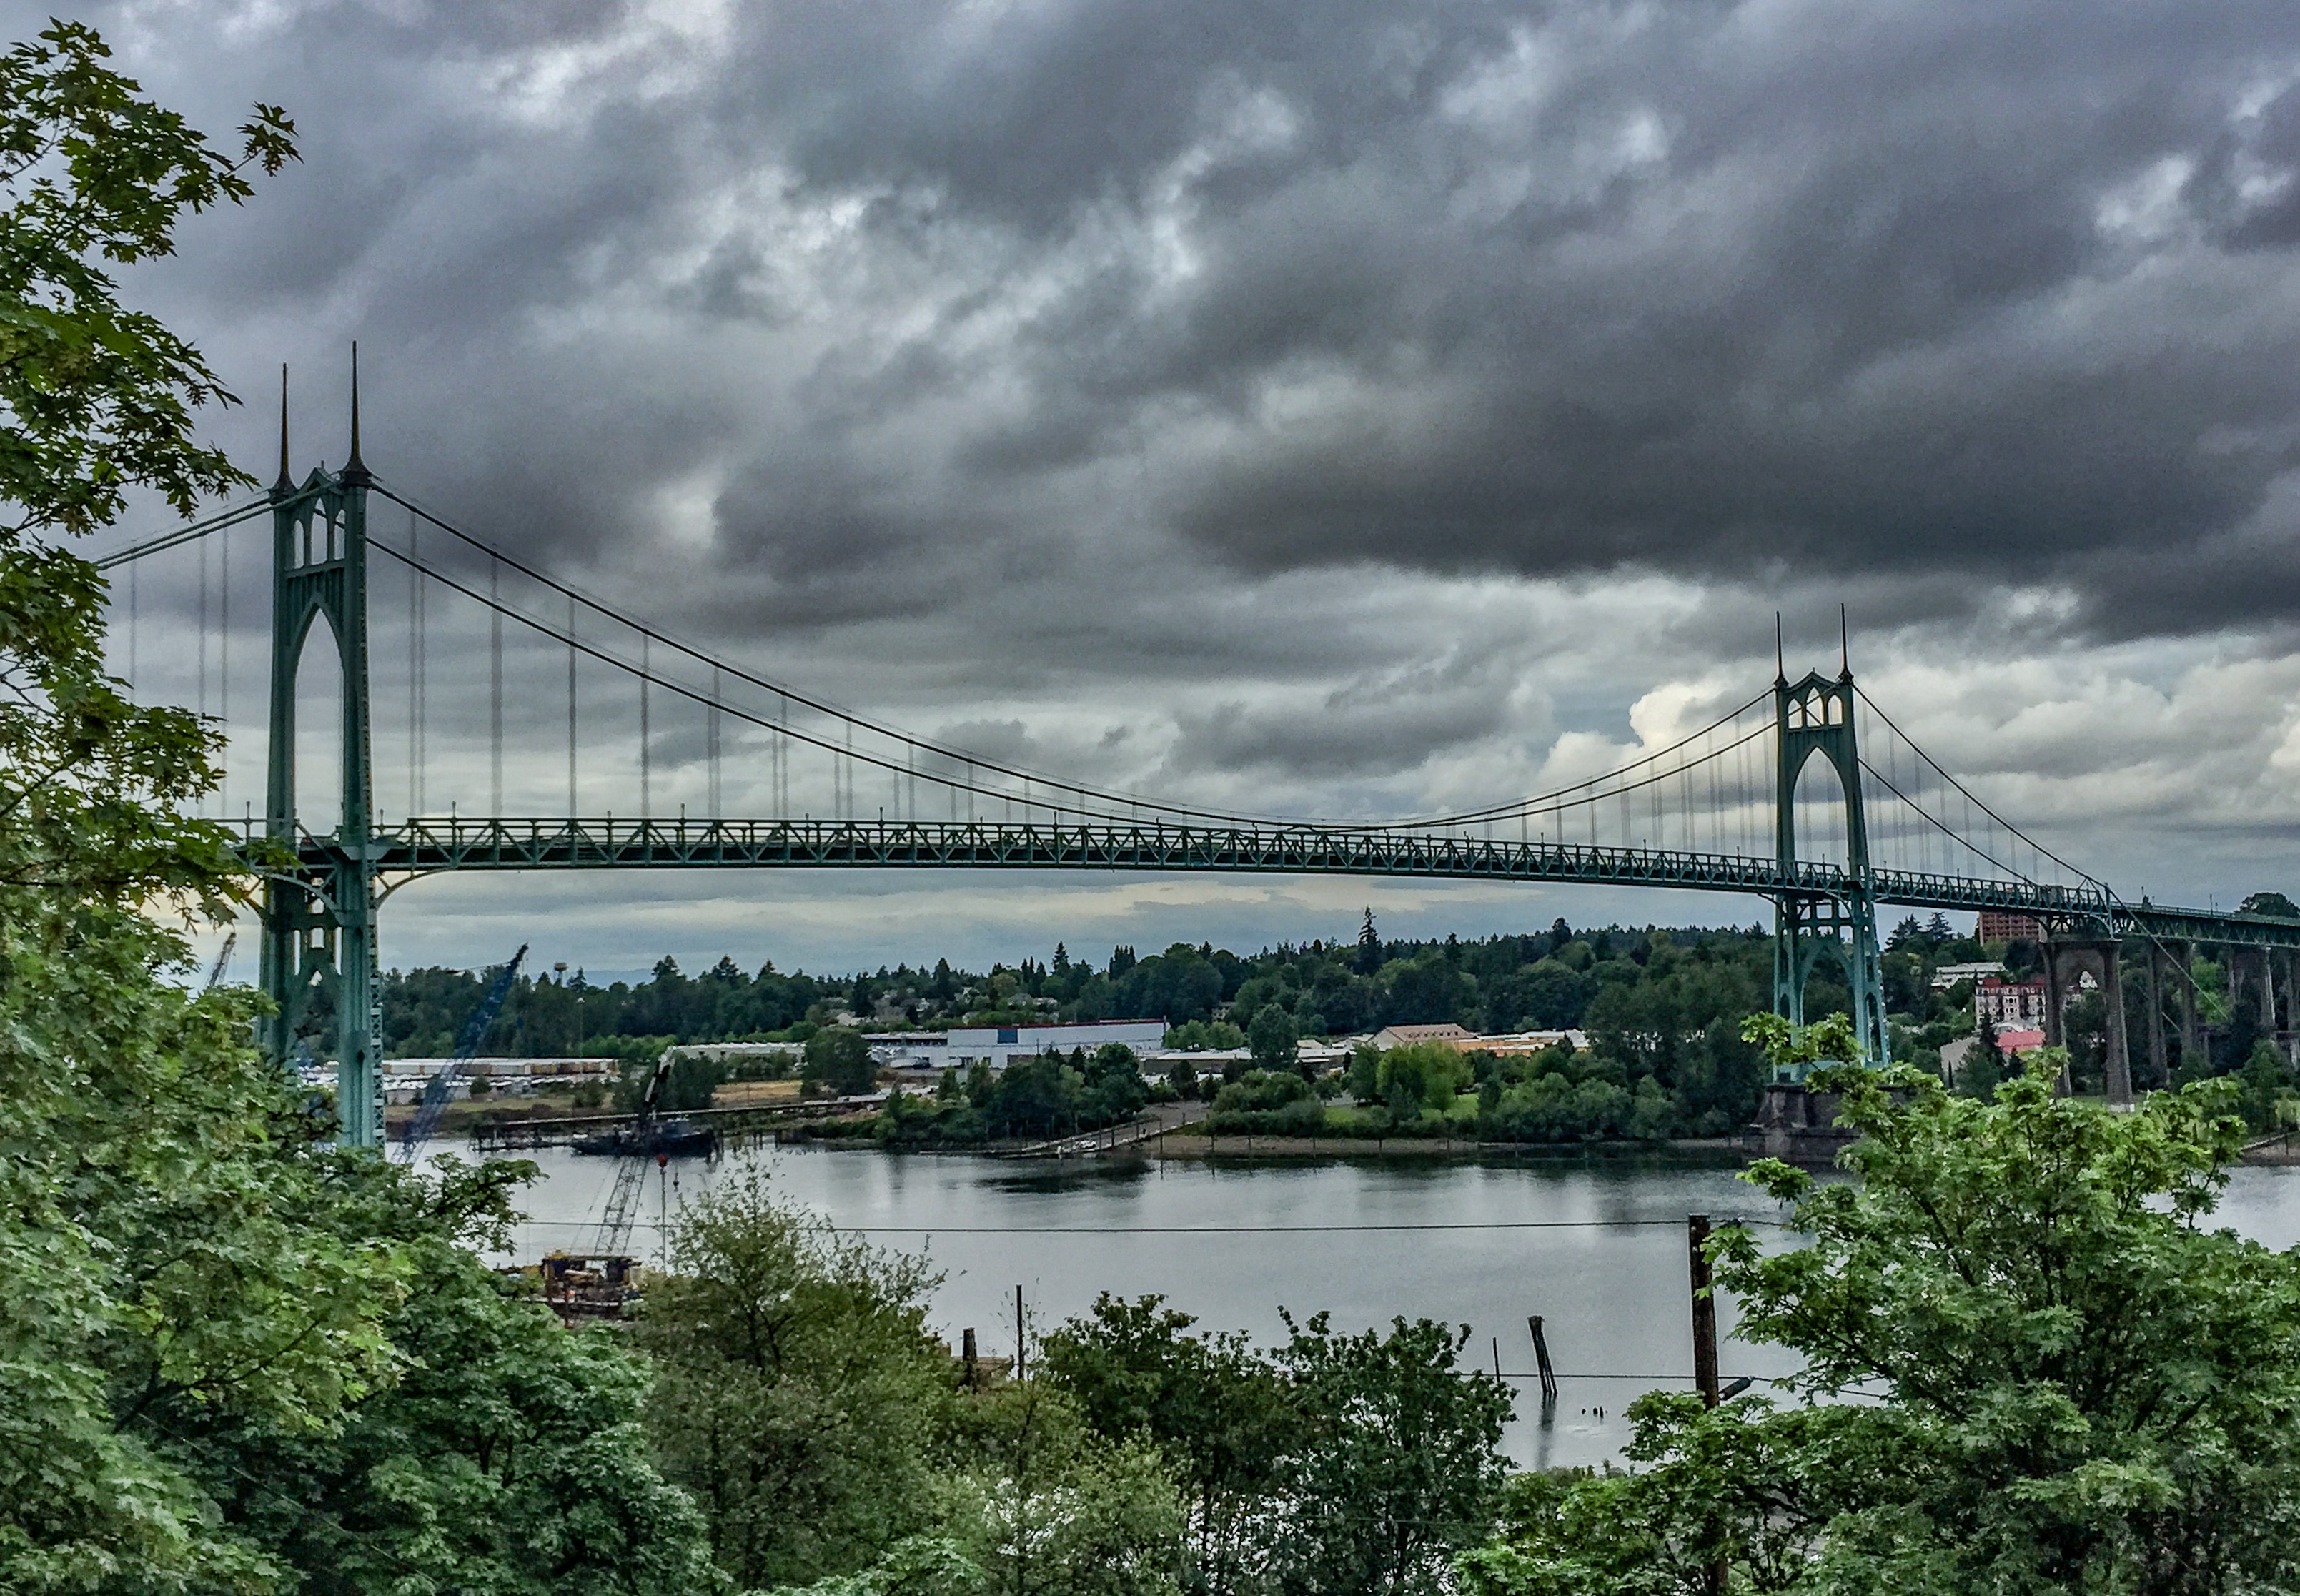 St. Johns Bridge, Portland, Oregon (23884097312).jpg